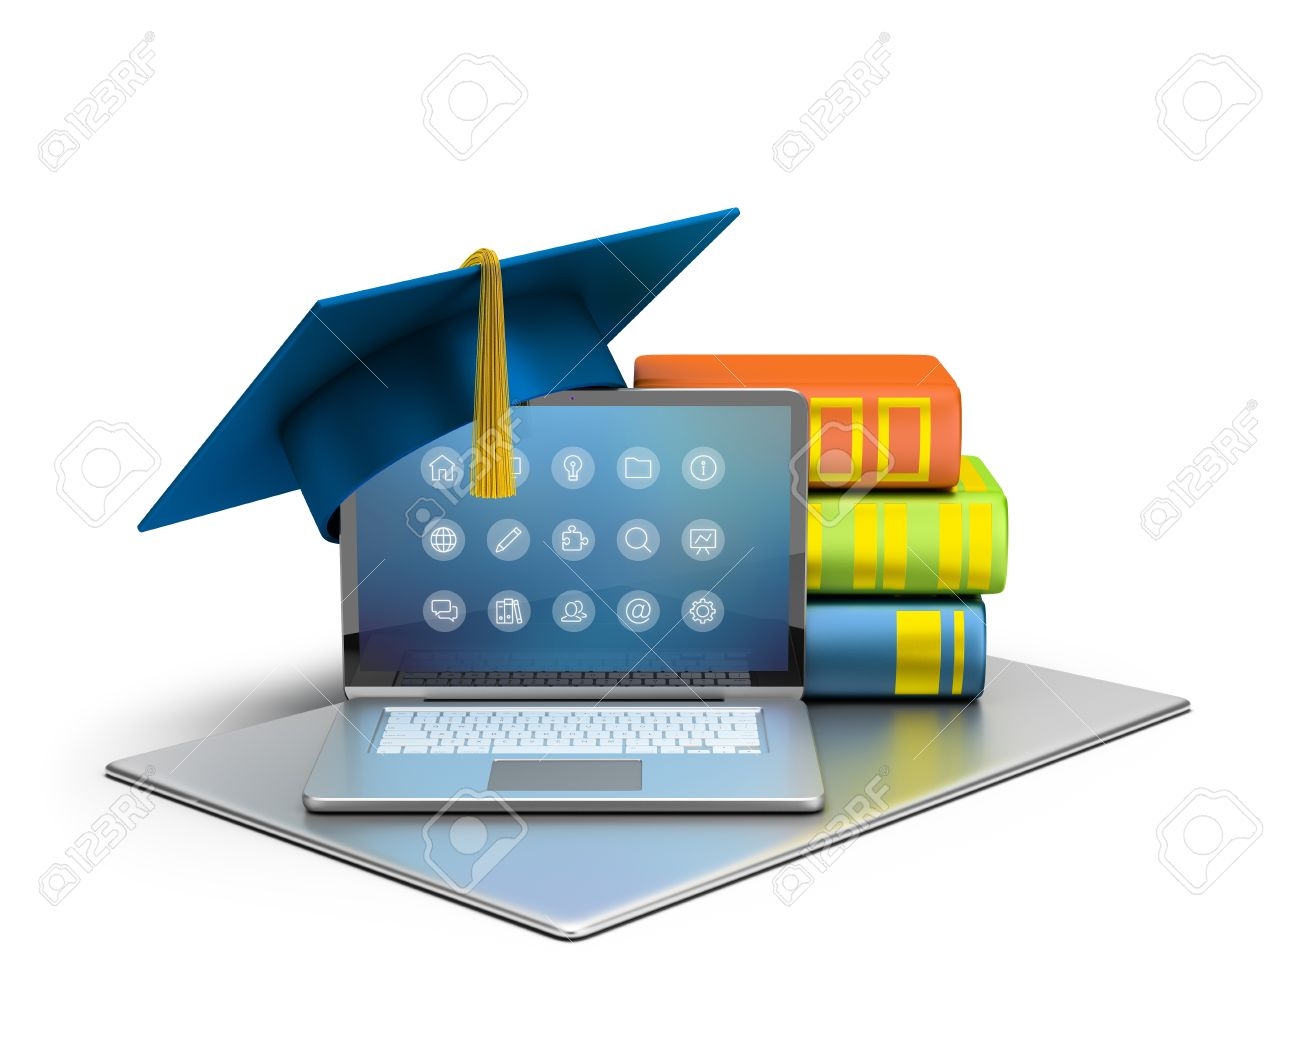 3d image. Laptop, hat and books. The concept of computer education. Isolated white background. - 33945526